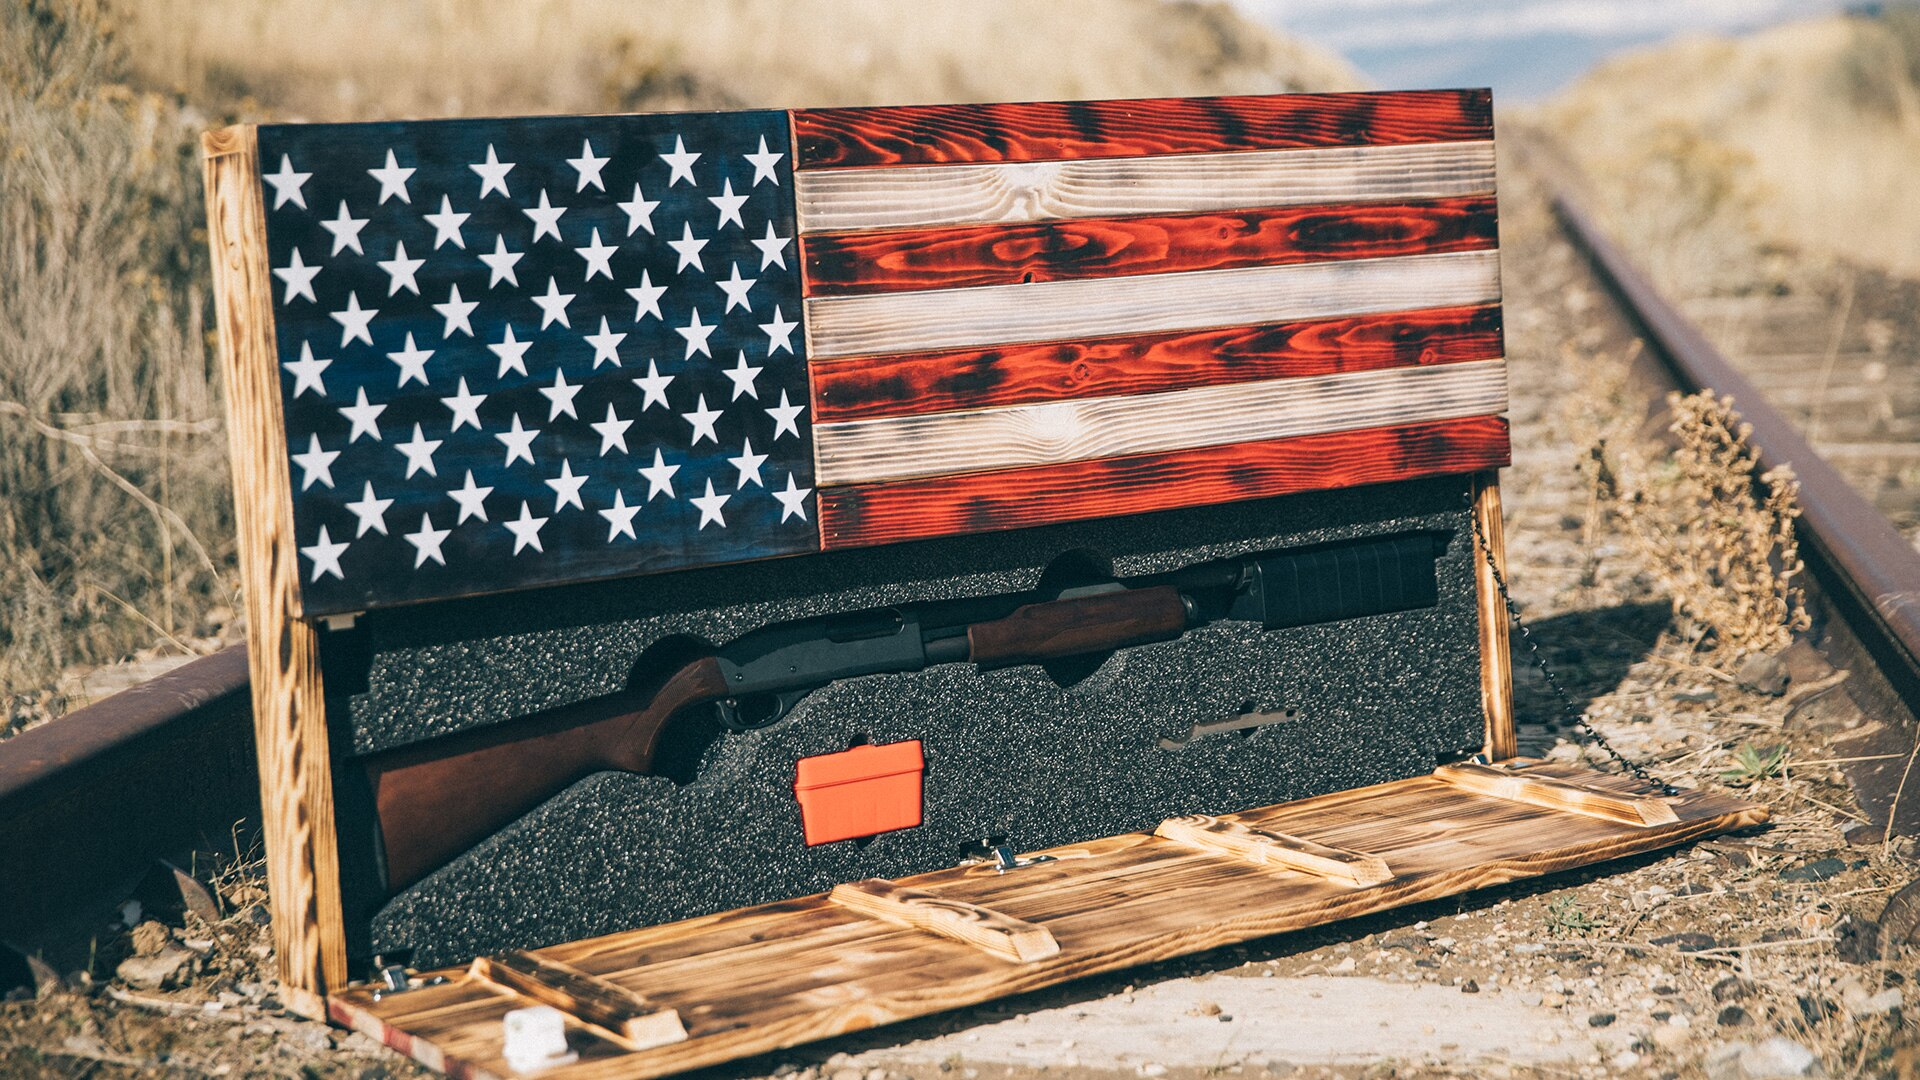 silencerco-sbs-870-salvo-flag-summit-4